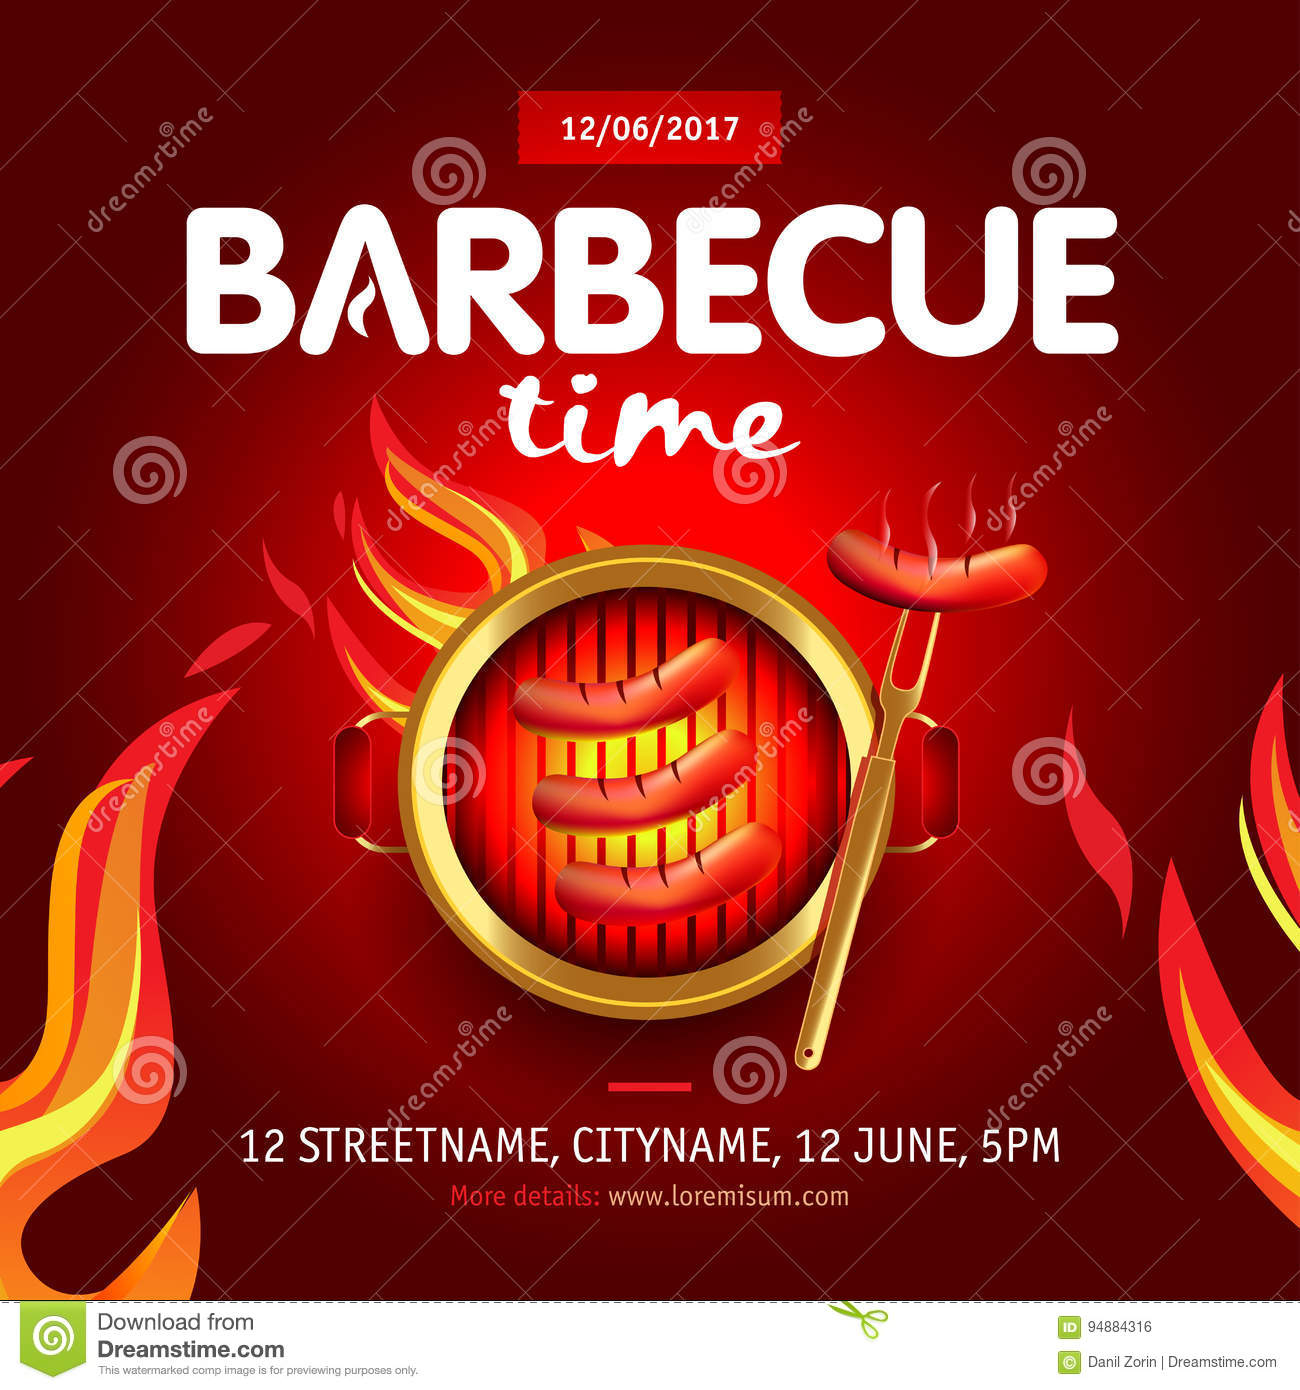 barbecue time party design with fire on shield barbecue invitation barbecue logo bbq template. Black Bedroom Furniture Sets. Home Design Ideas